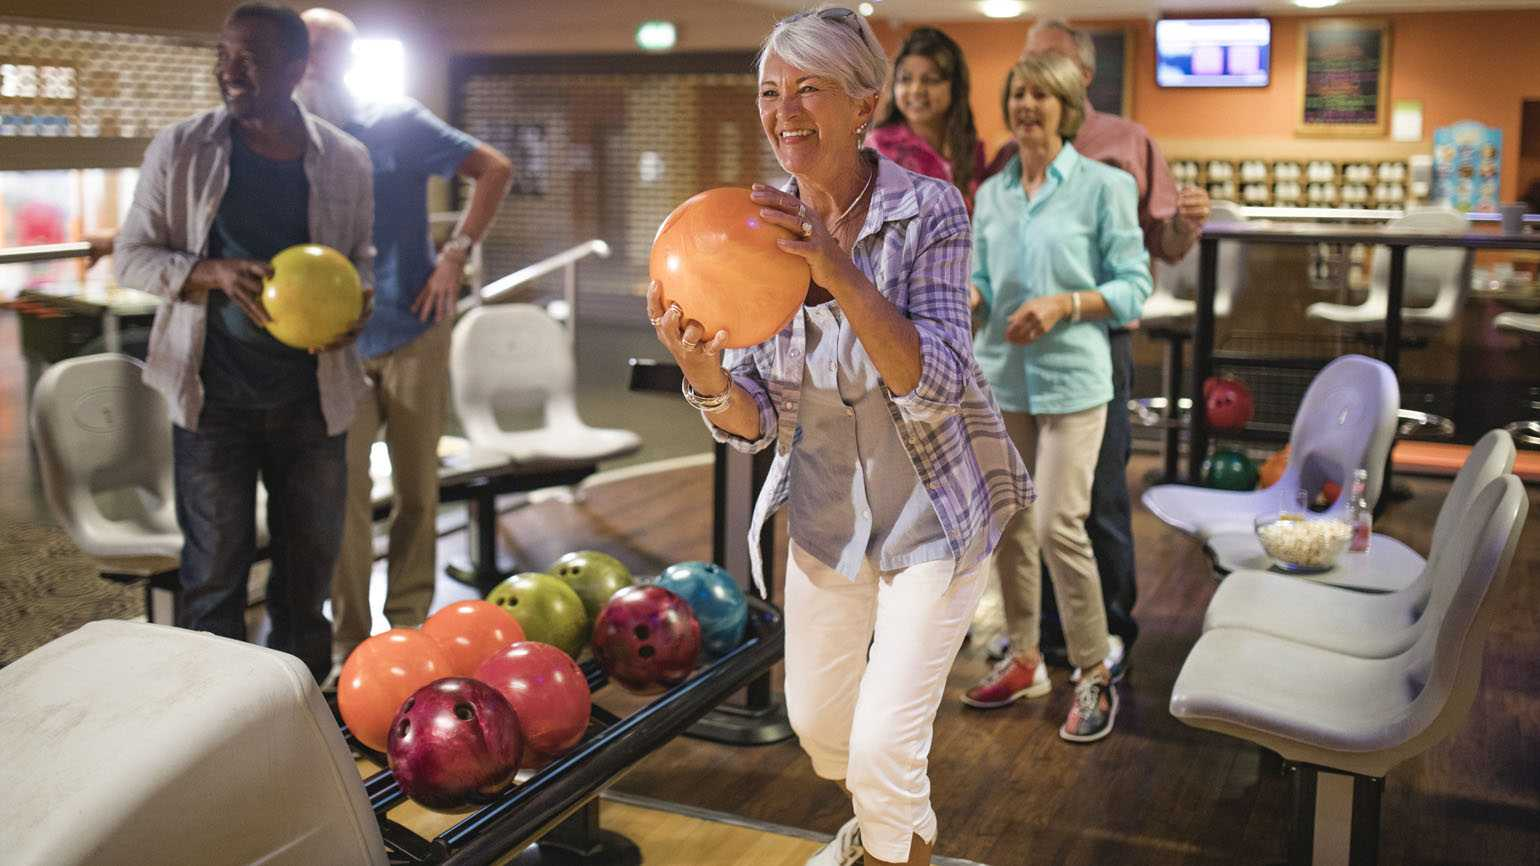 A woman bowling with friends.